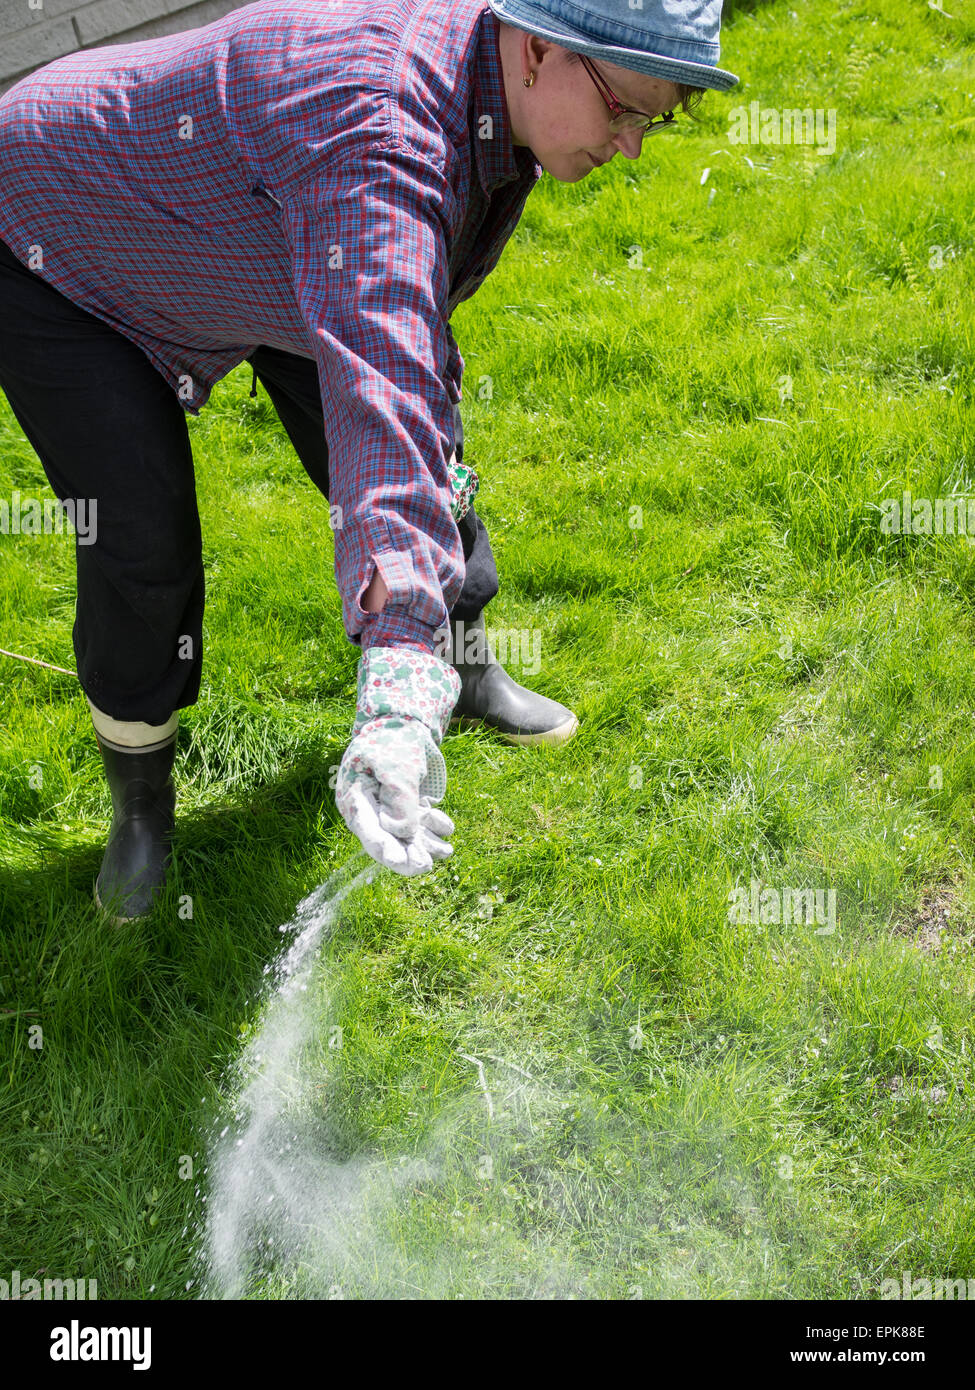 Woman take care of the lawn and fertilize - Stock Image